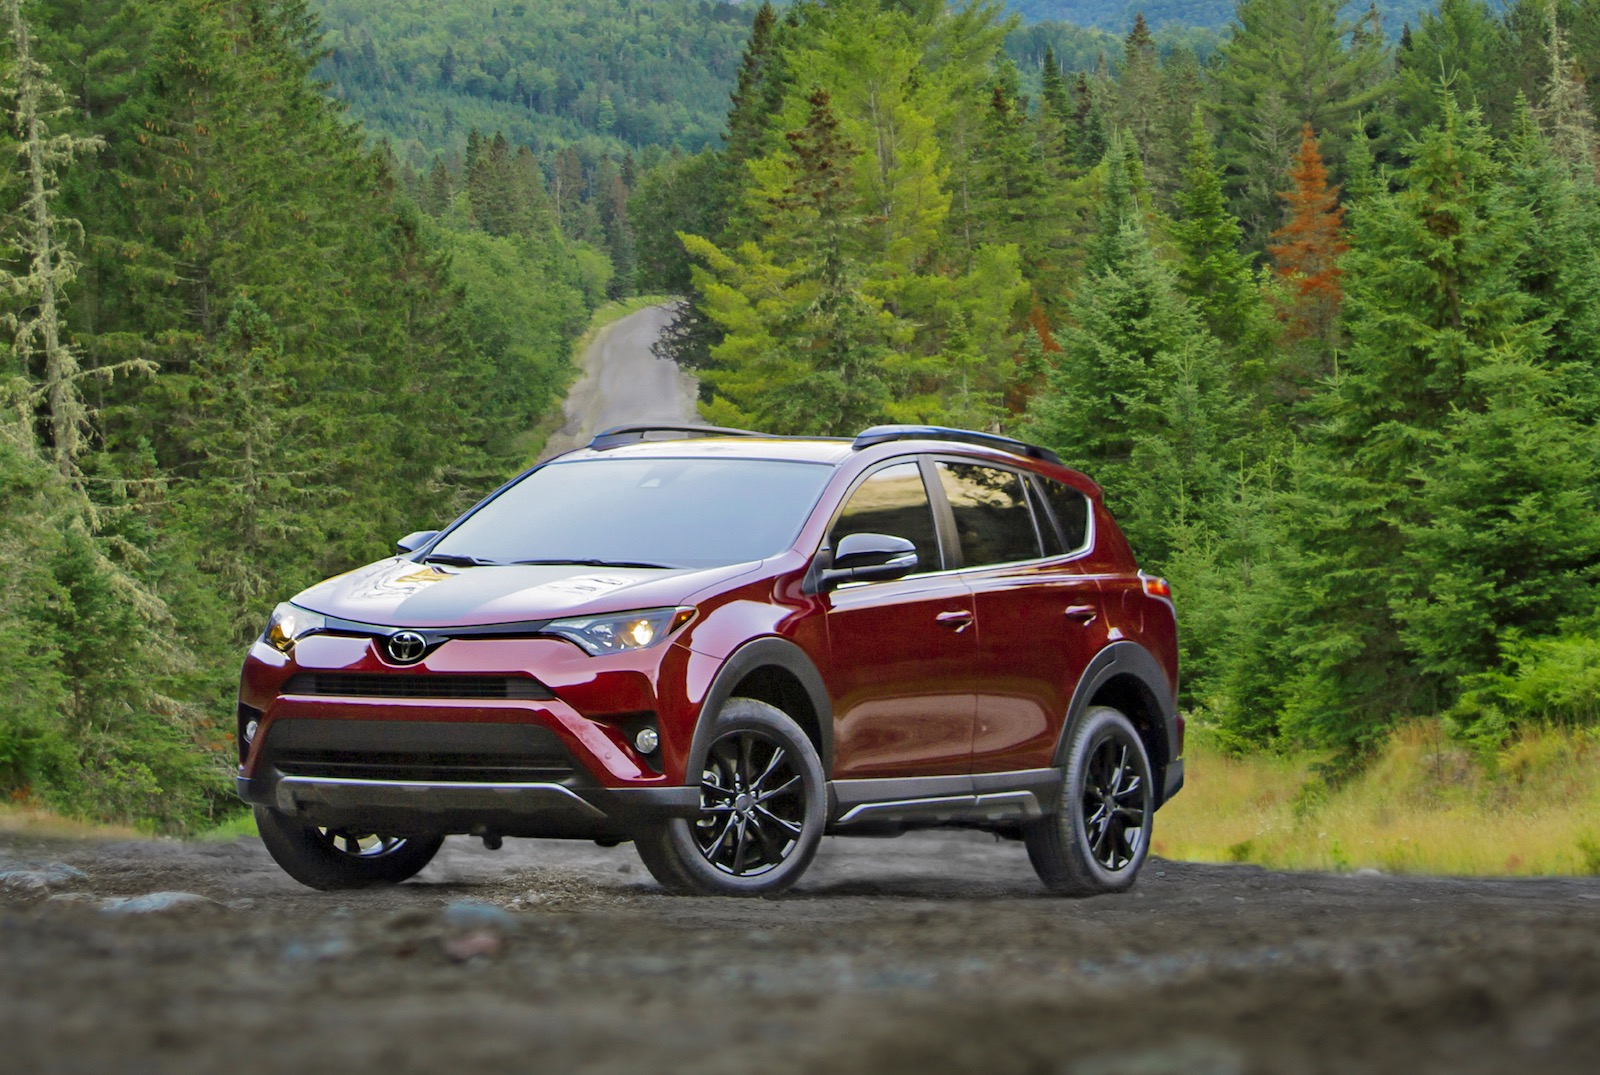 2017 toyota rav4 adventure edition unveiled at chicago show performancedrive. Black Bedroom Furniture Sets. Home Design Ideas